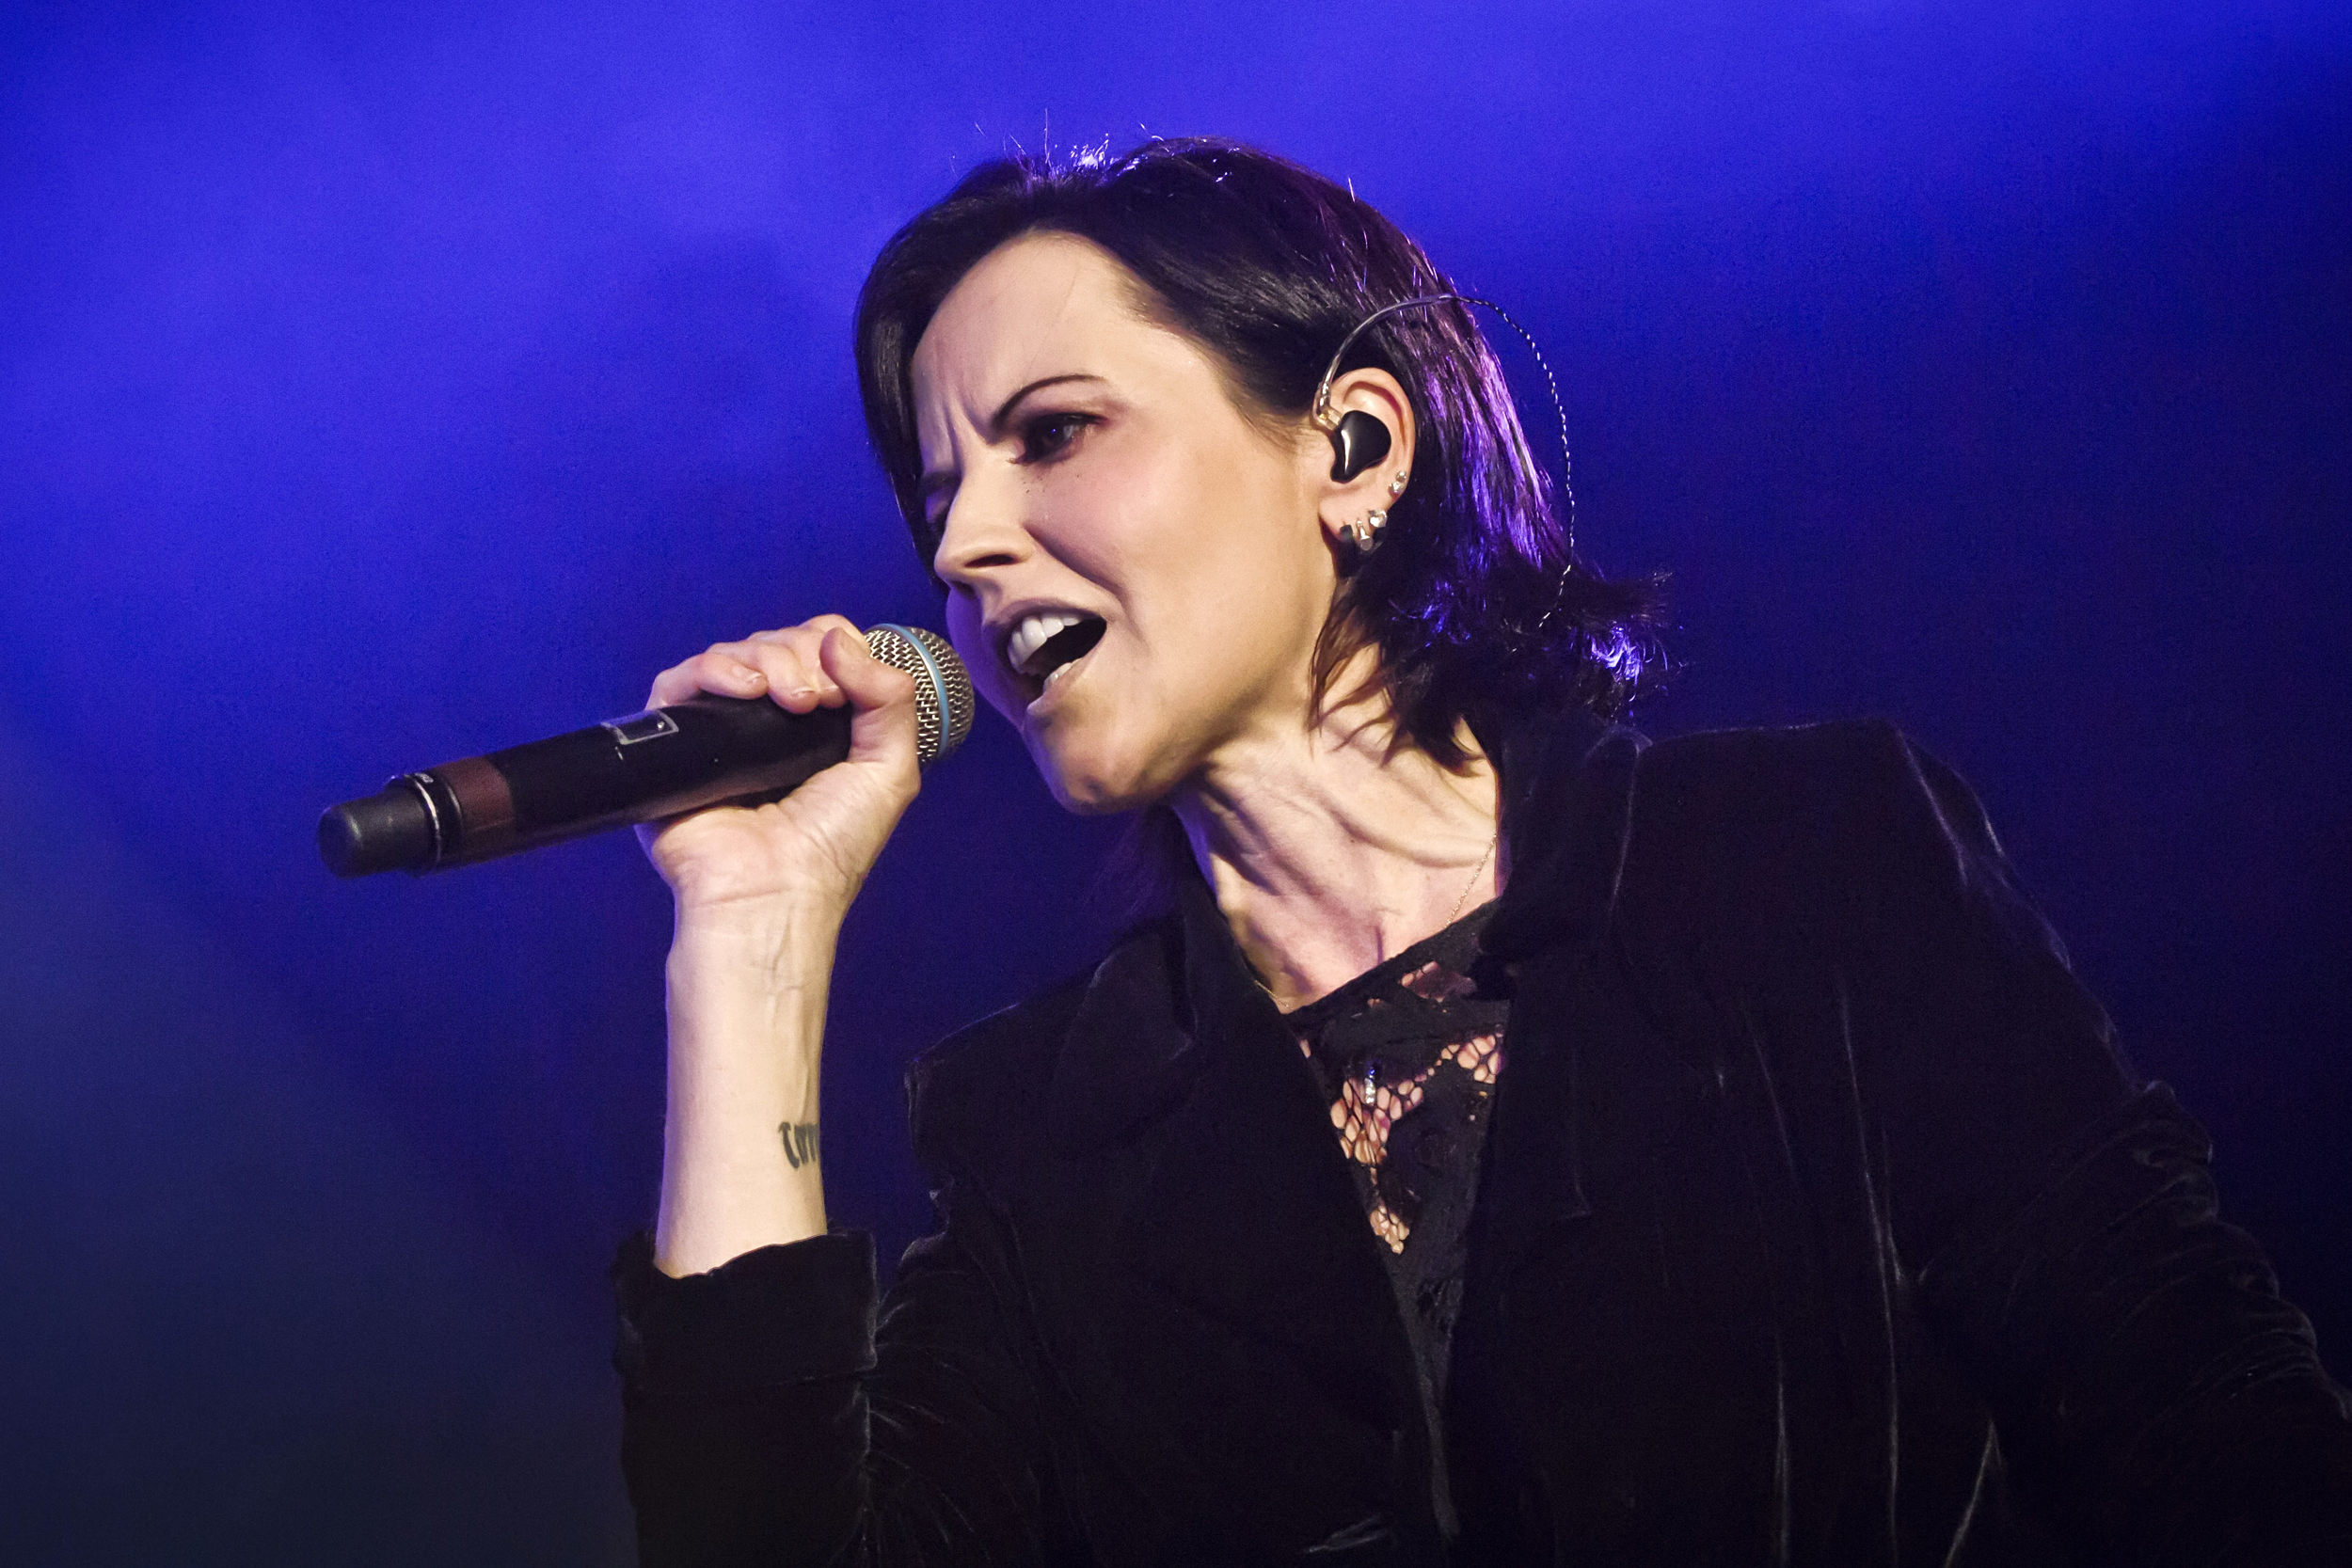 The Cranberries singer Dolores O Riordan drowned in bathtub after     The Cranberries singer Dolores O Riordan drowned in bathtub after drinking   coroner finds